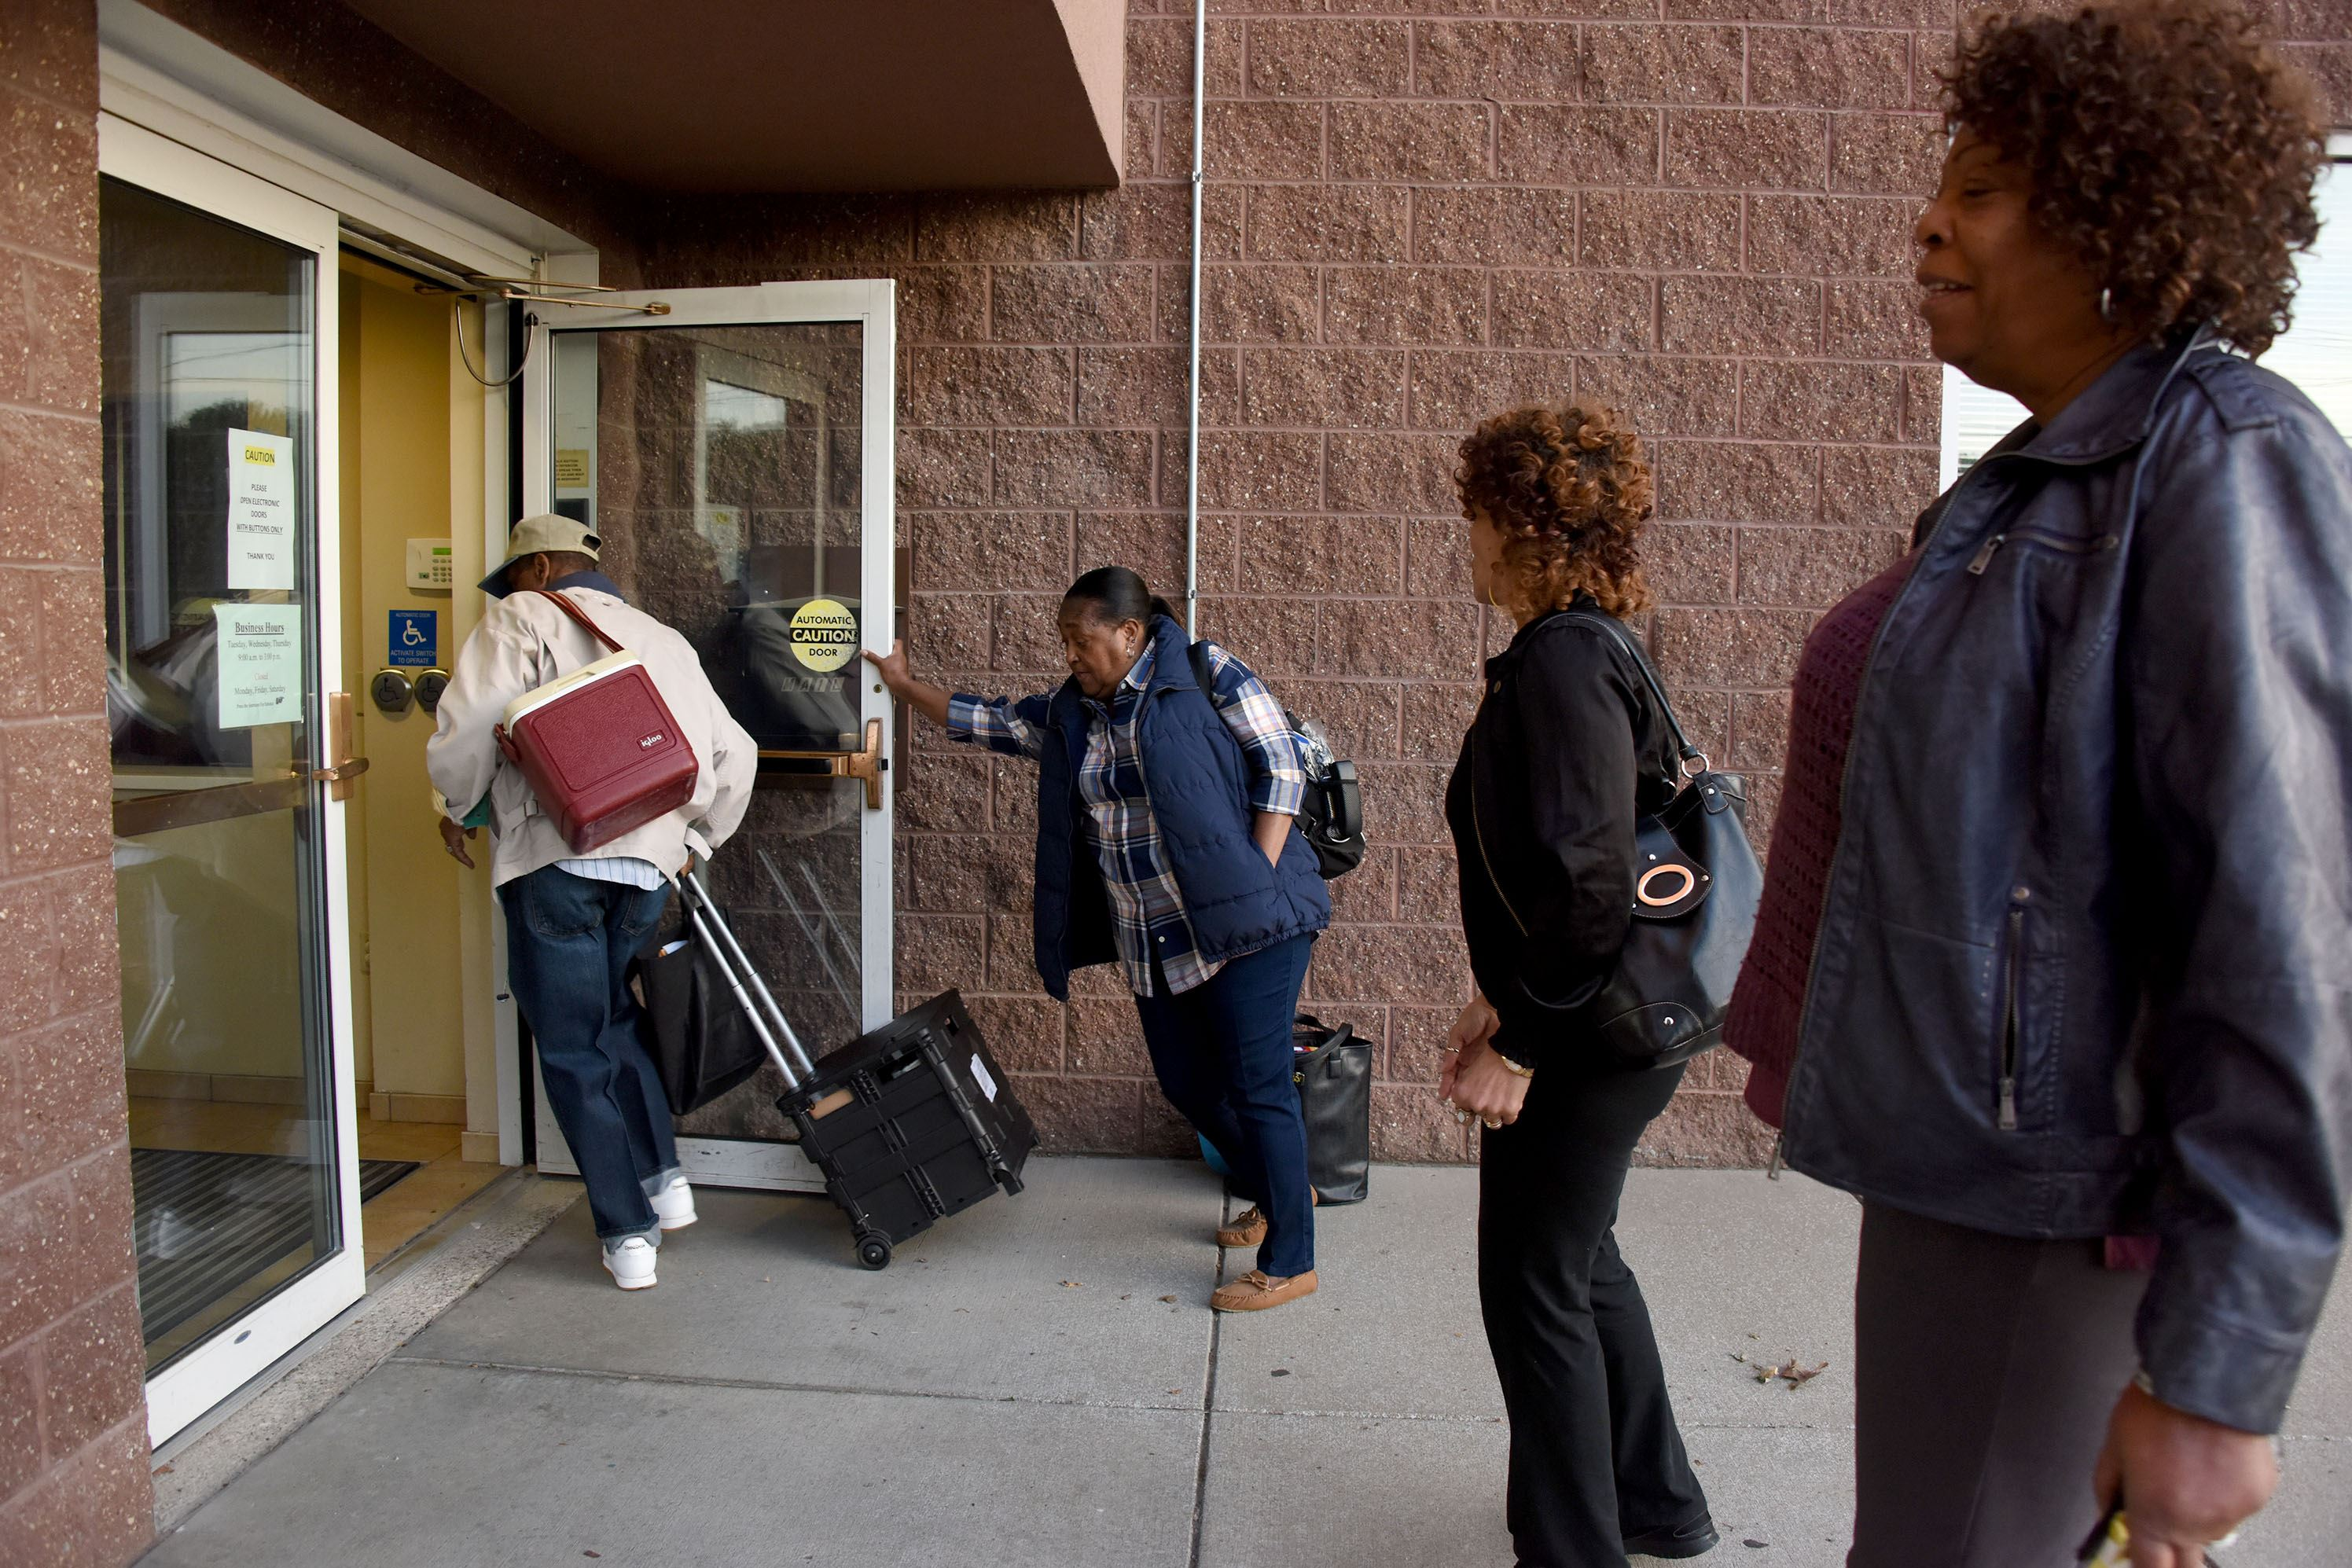 election Day Poll workers open the doors to set up for primary election day voting at the Ebenezer Baptist Church on Wylie Avenue in the Hill District Tuesday morning.